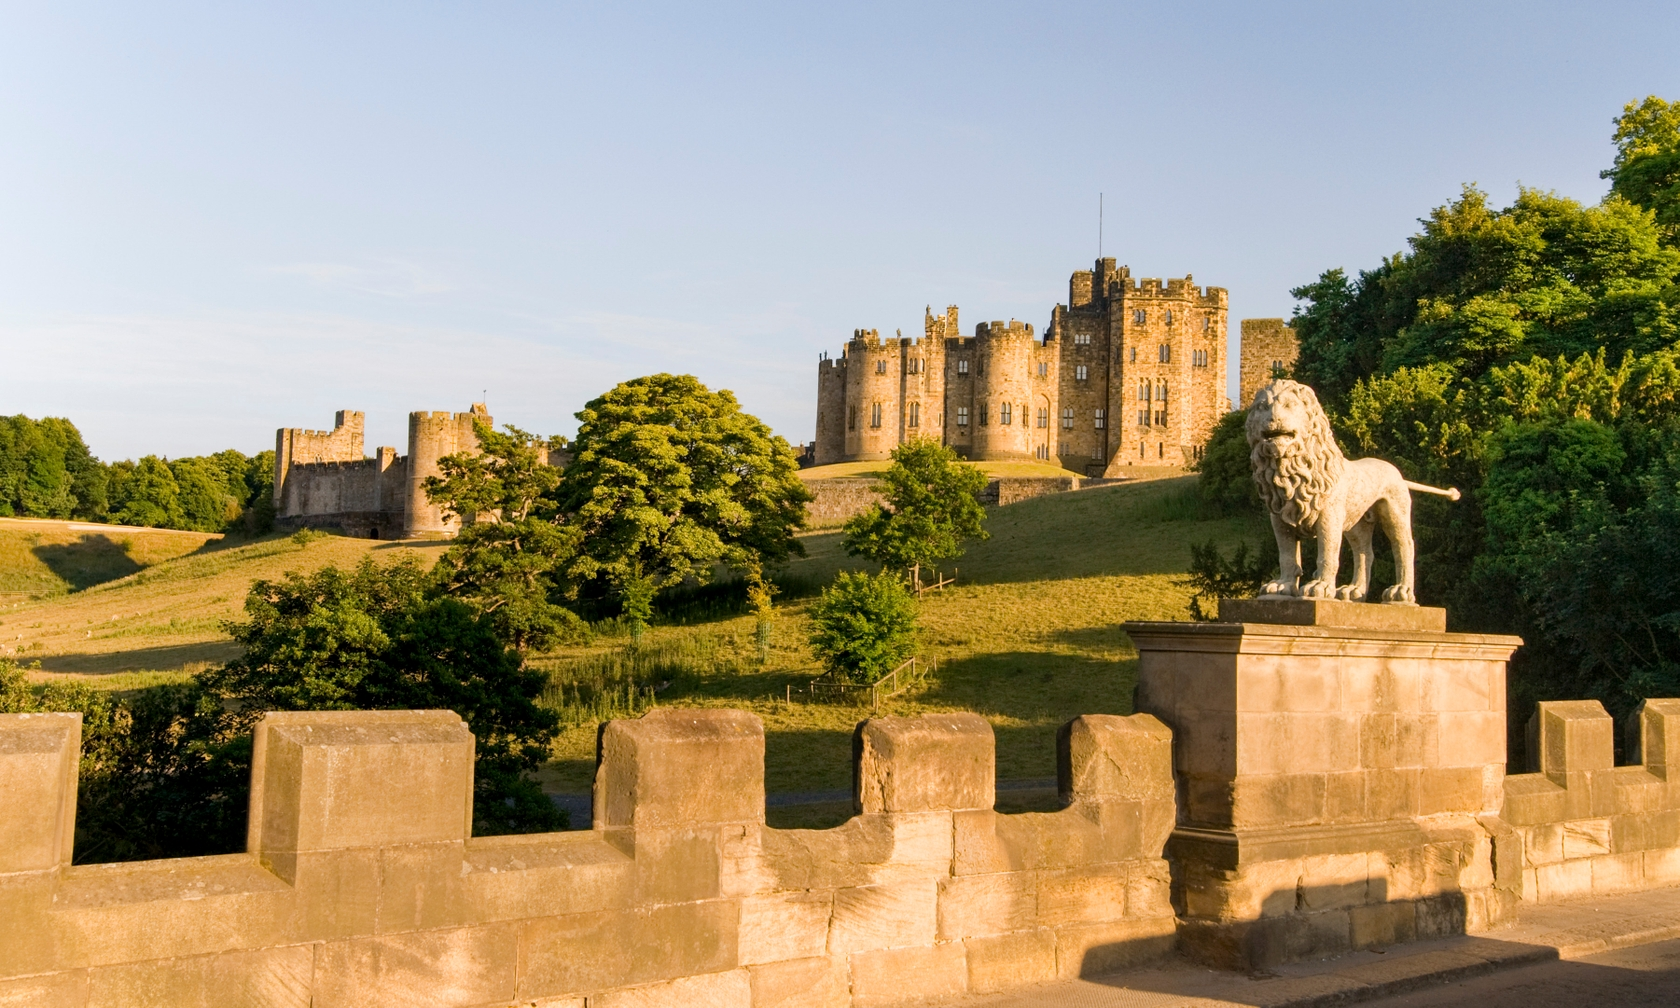 Holiday rentals in Alnwick